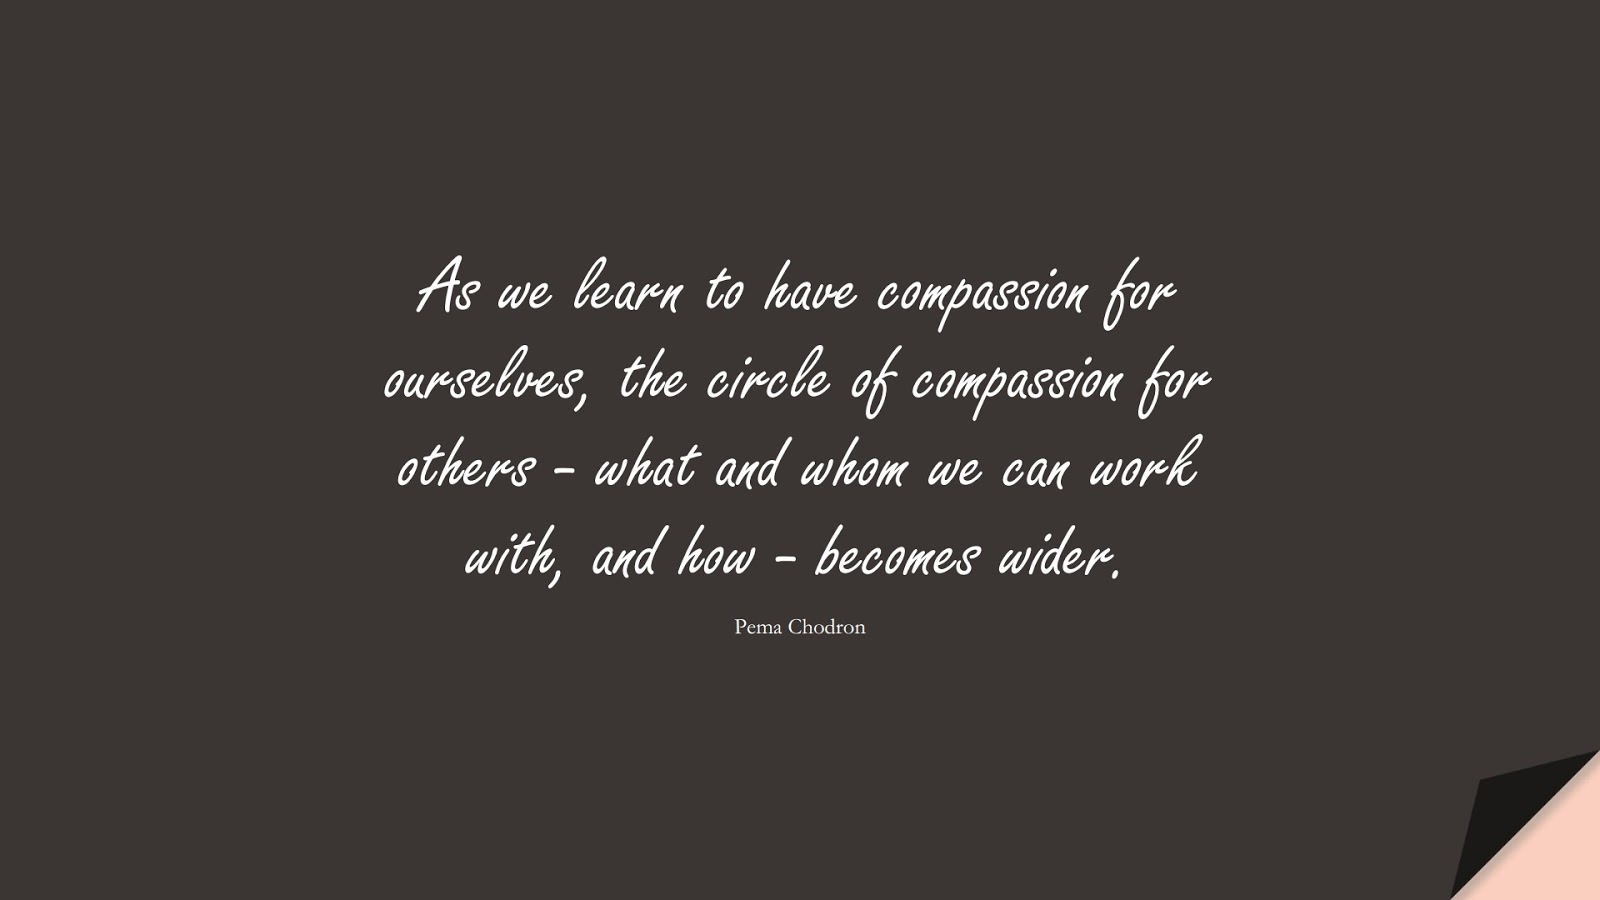 As we learn to have compassion for ourselves, the circle of compassion for others - what and whom we can work with, and how - becomes wider. (Pema Chodron);  #SpiritQuotes